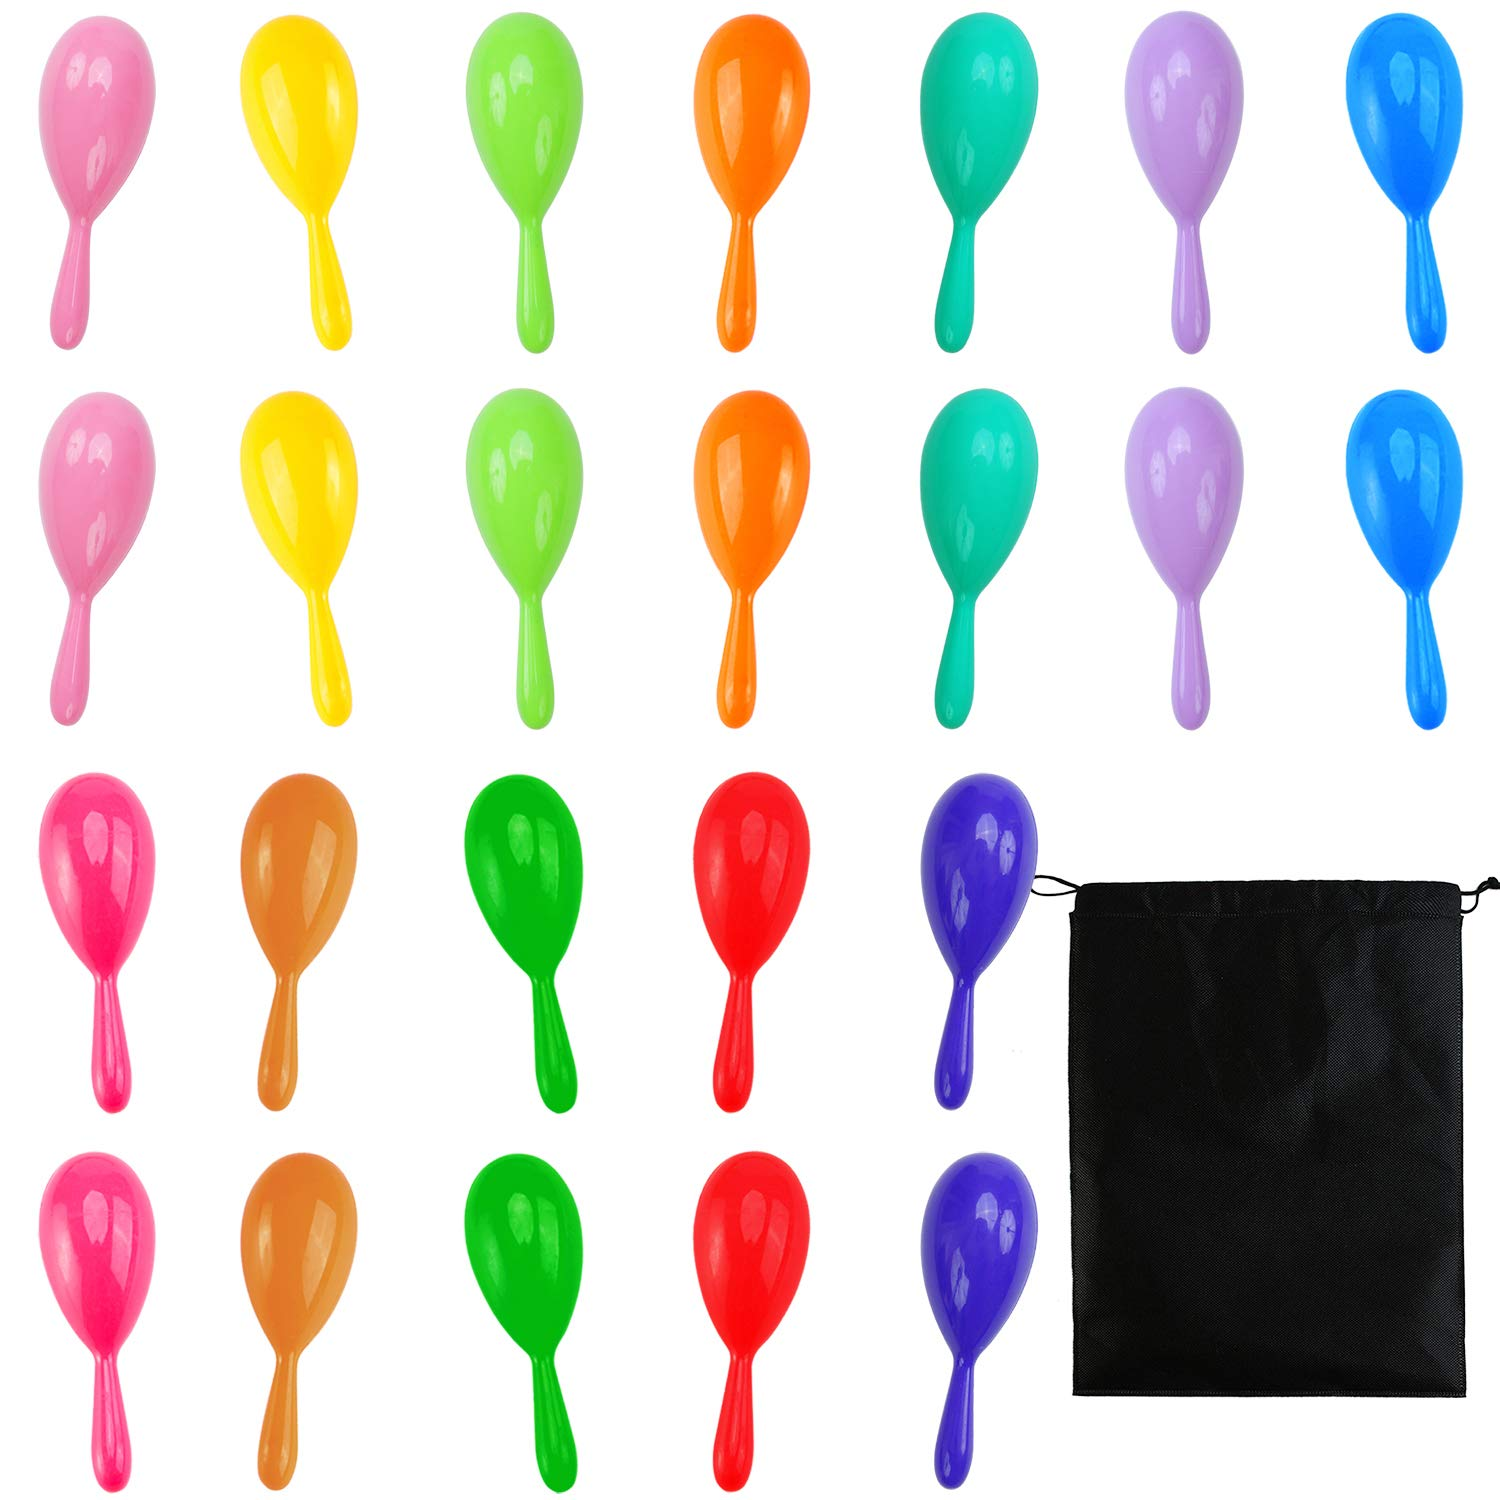 Resinta 24 Pieces 12 Colors Neon Maracas Shakers Mini Noisemaker Bulk Colorful Noise Maker Drawstring Bag Mexican Fiesta Party Favors Classroom Musical Instrument, 4 Inch